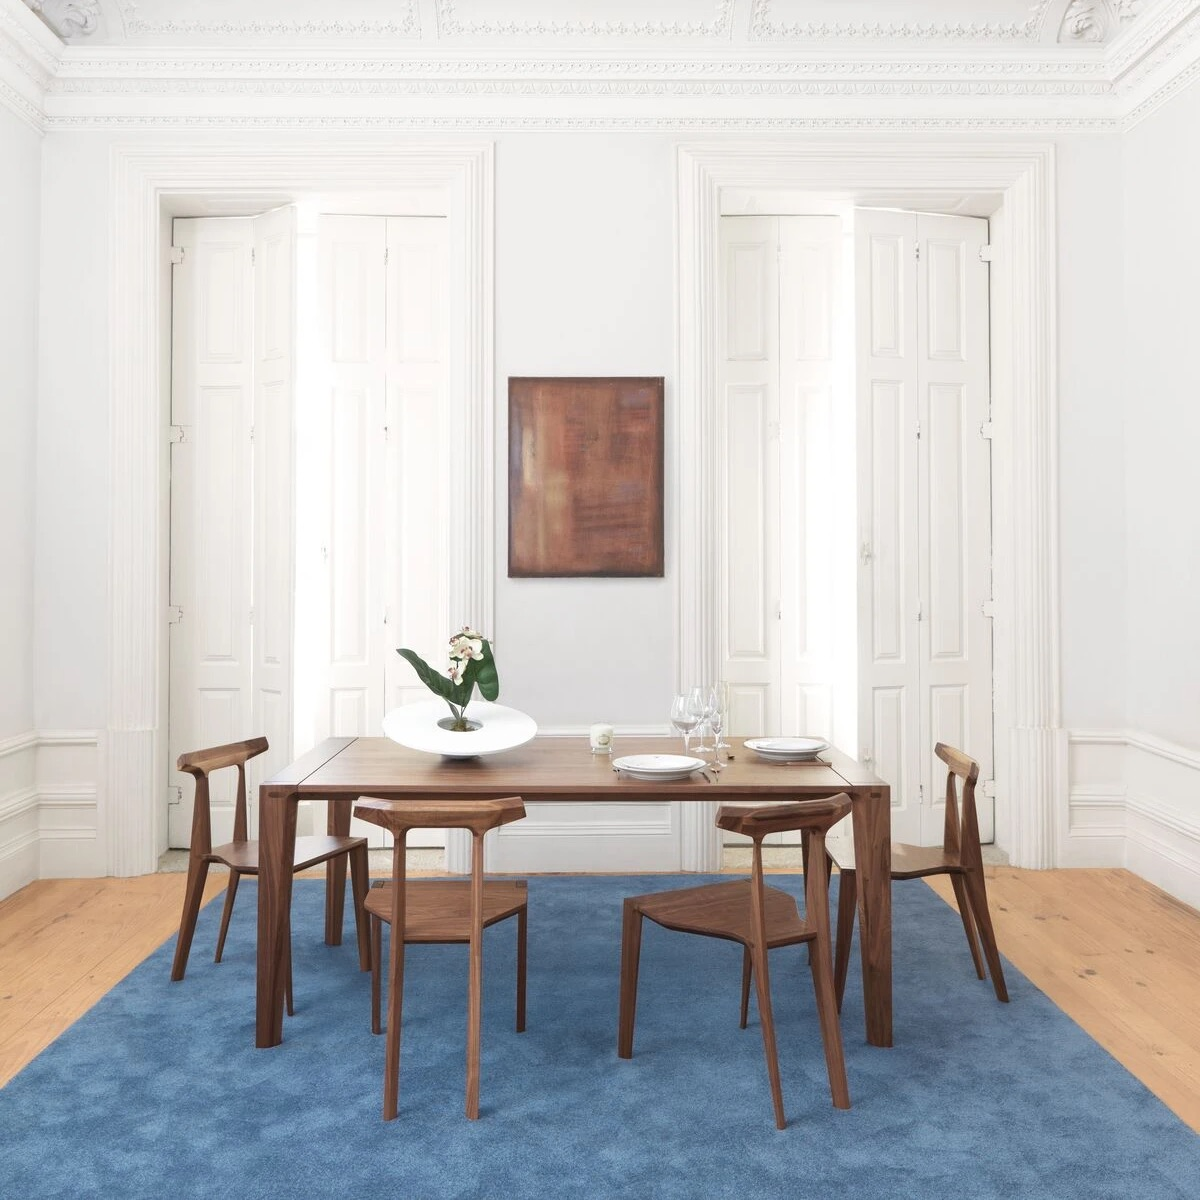 Orca Chairs and Raia Dining Table.